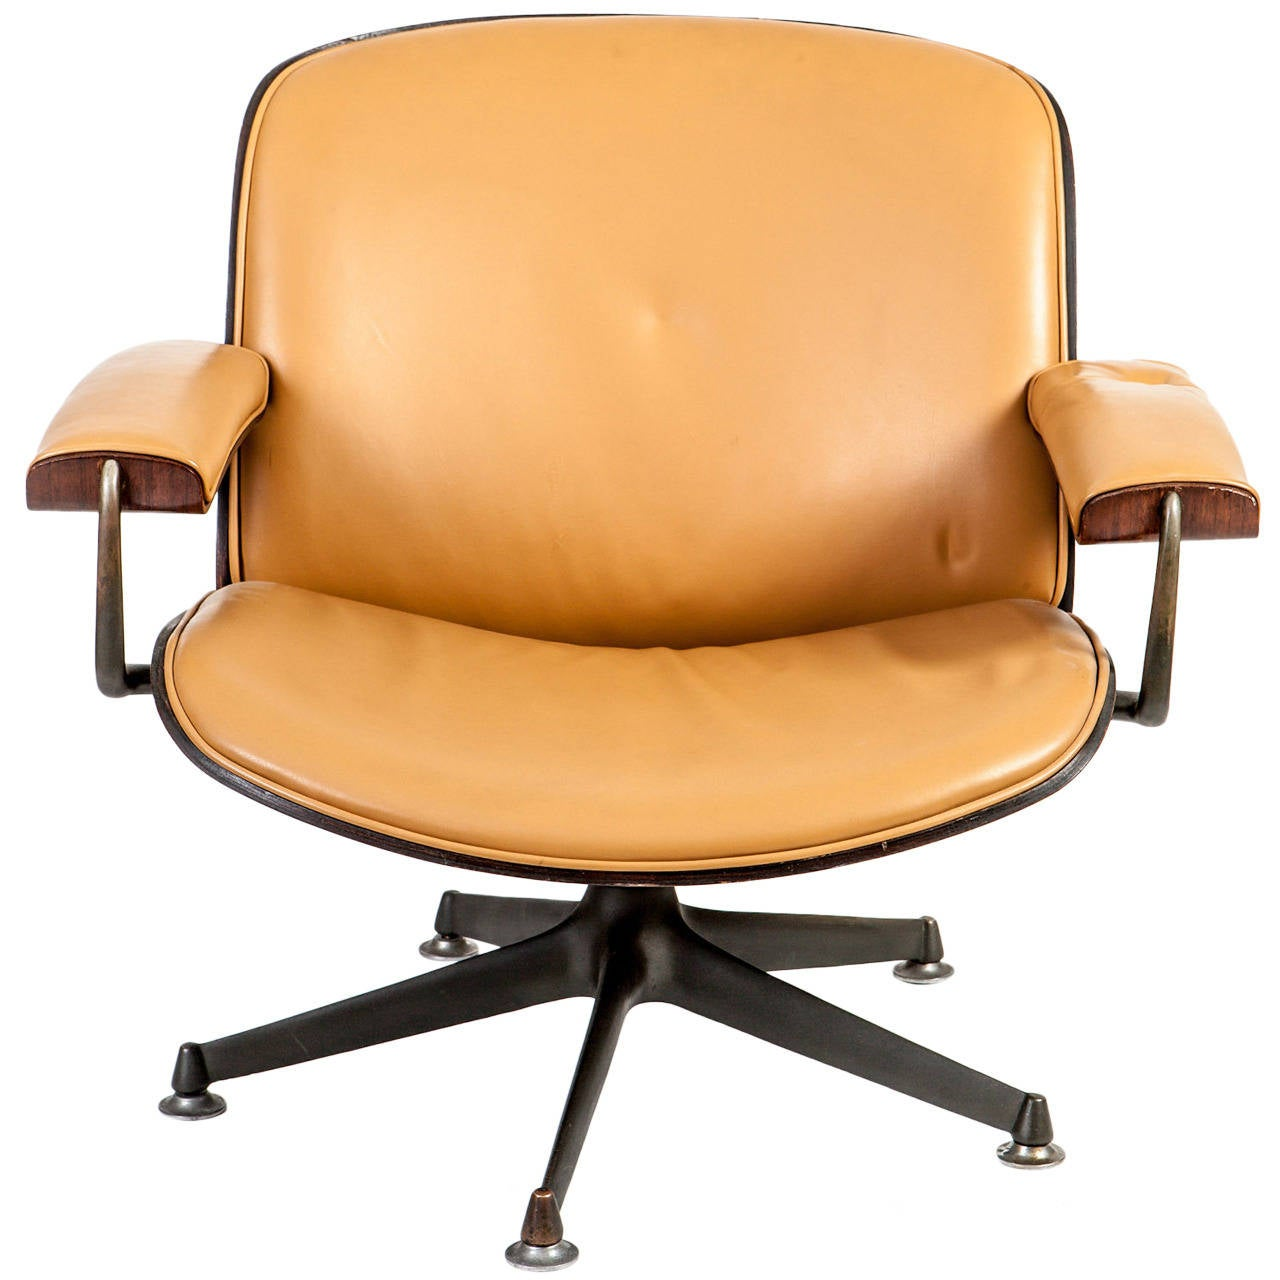 Italian Midcentury Rosewood and cognac Leather Lounge Chair by Ico Parisi